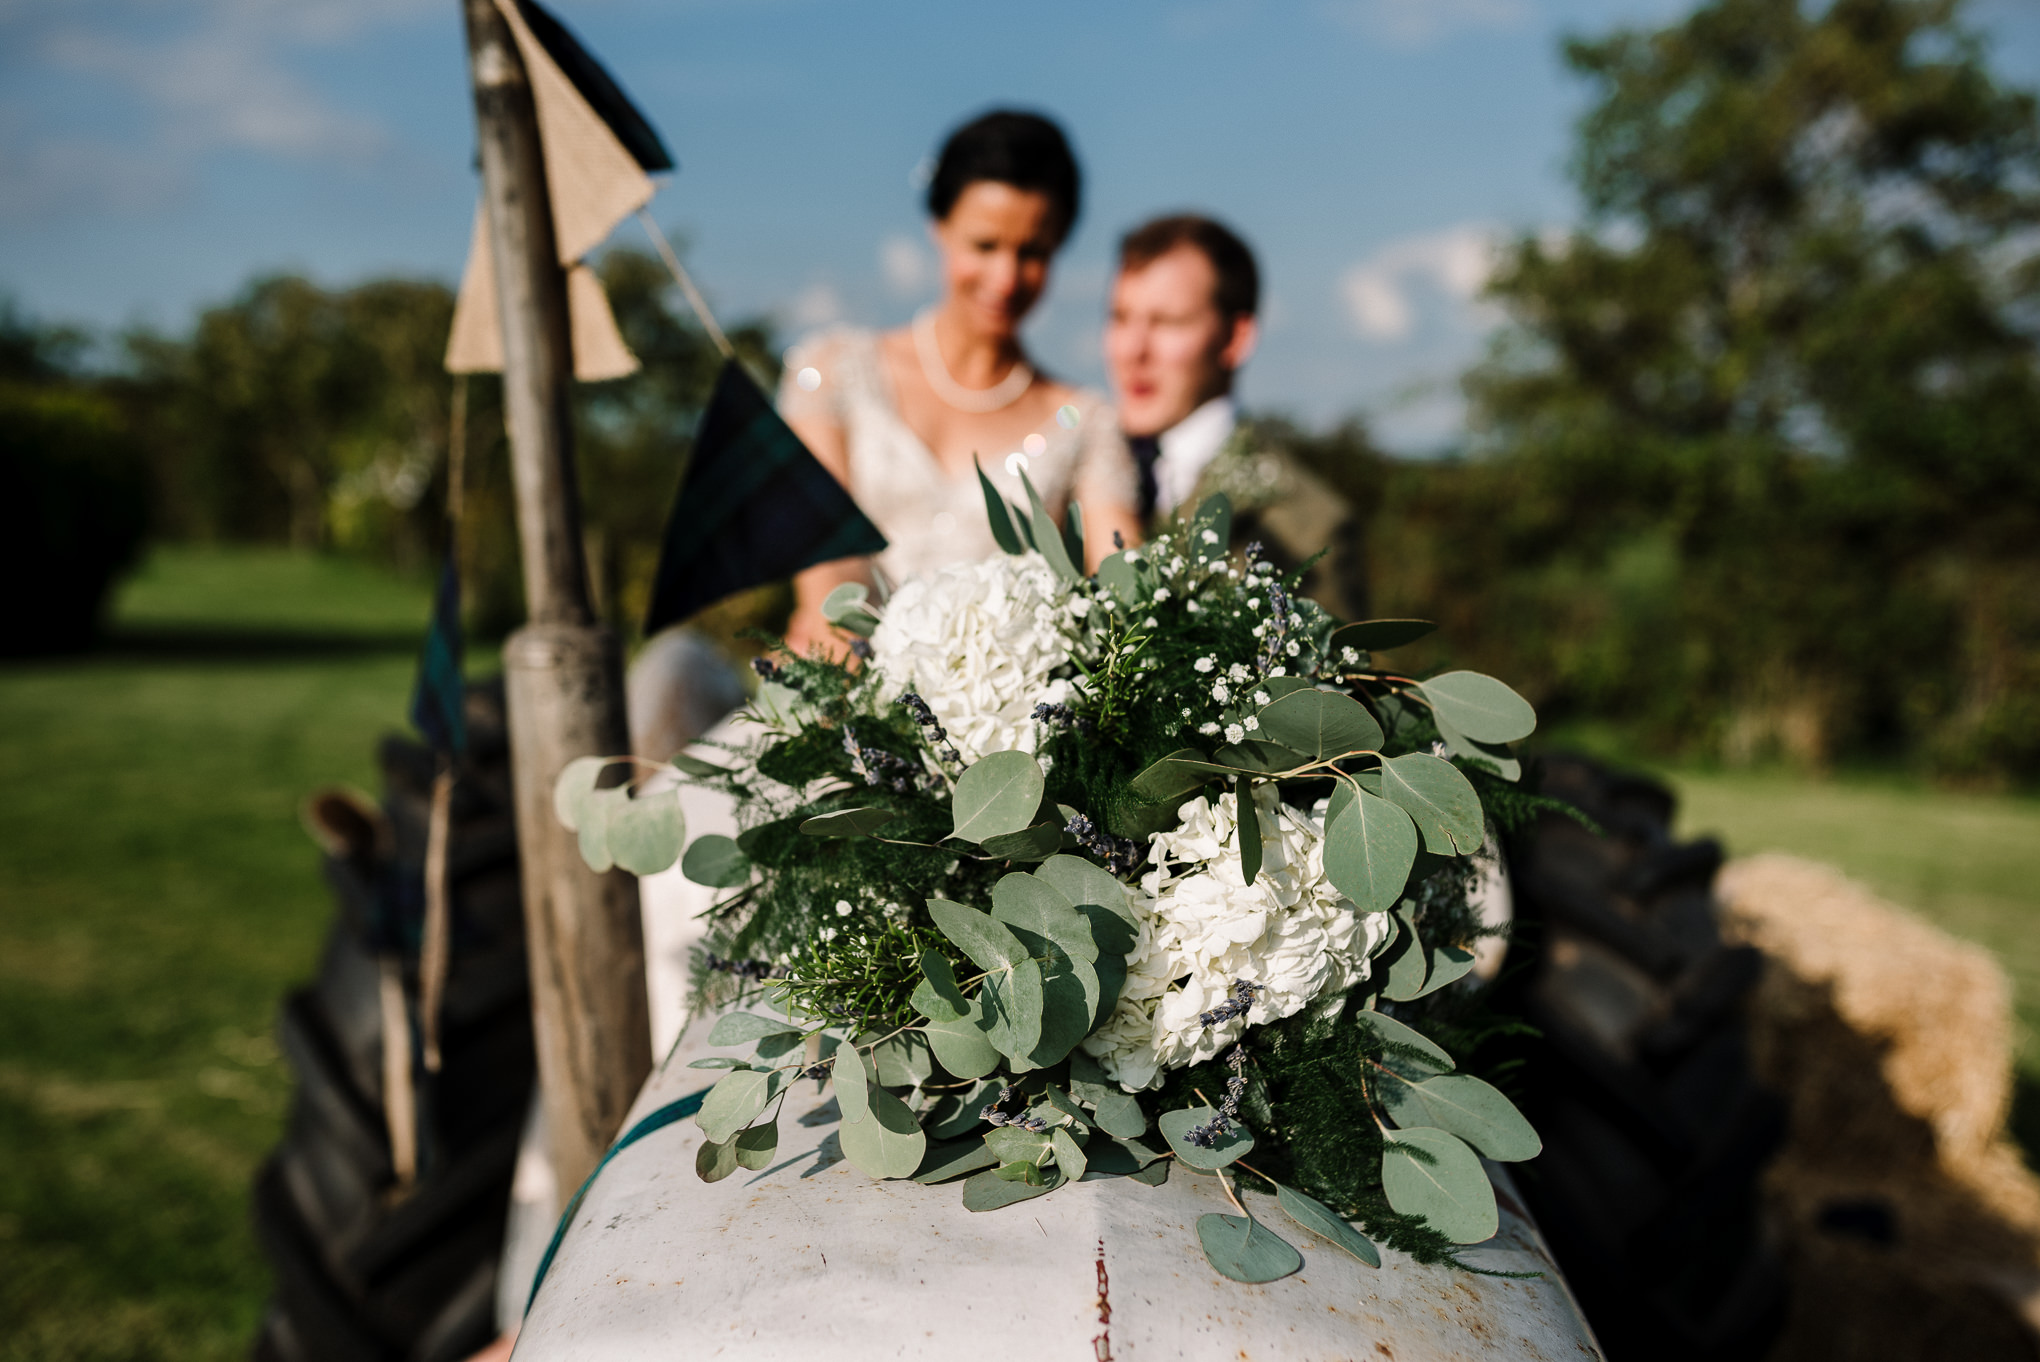 Bouquet on the tractor. Lake District wedding photographer